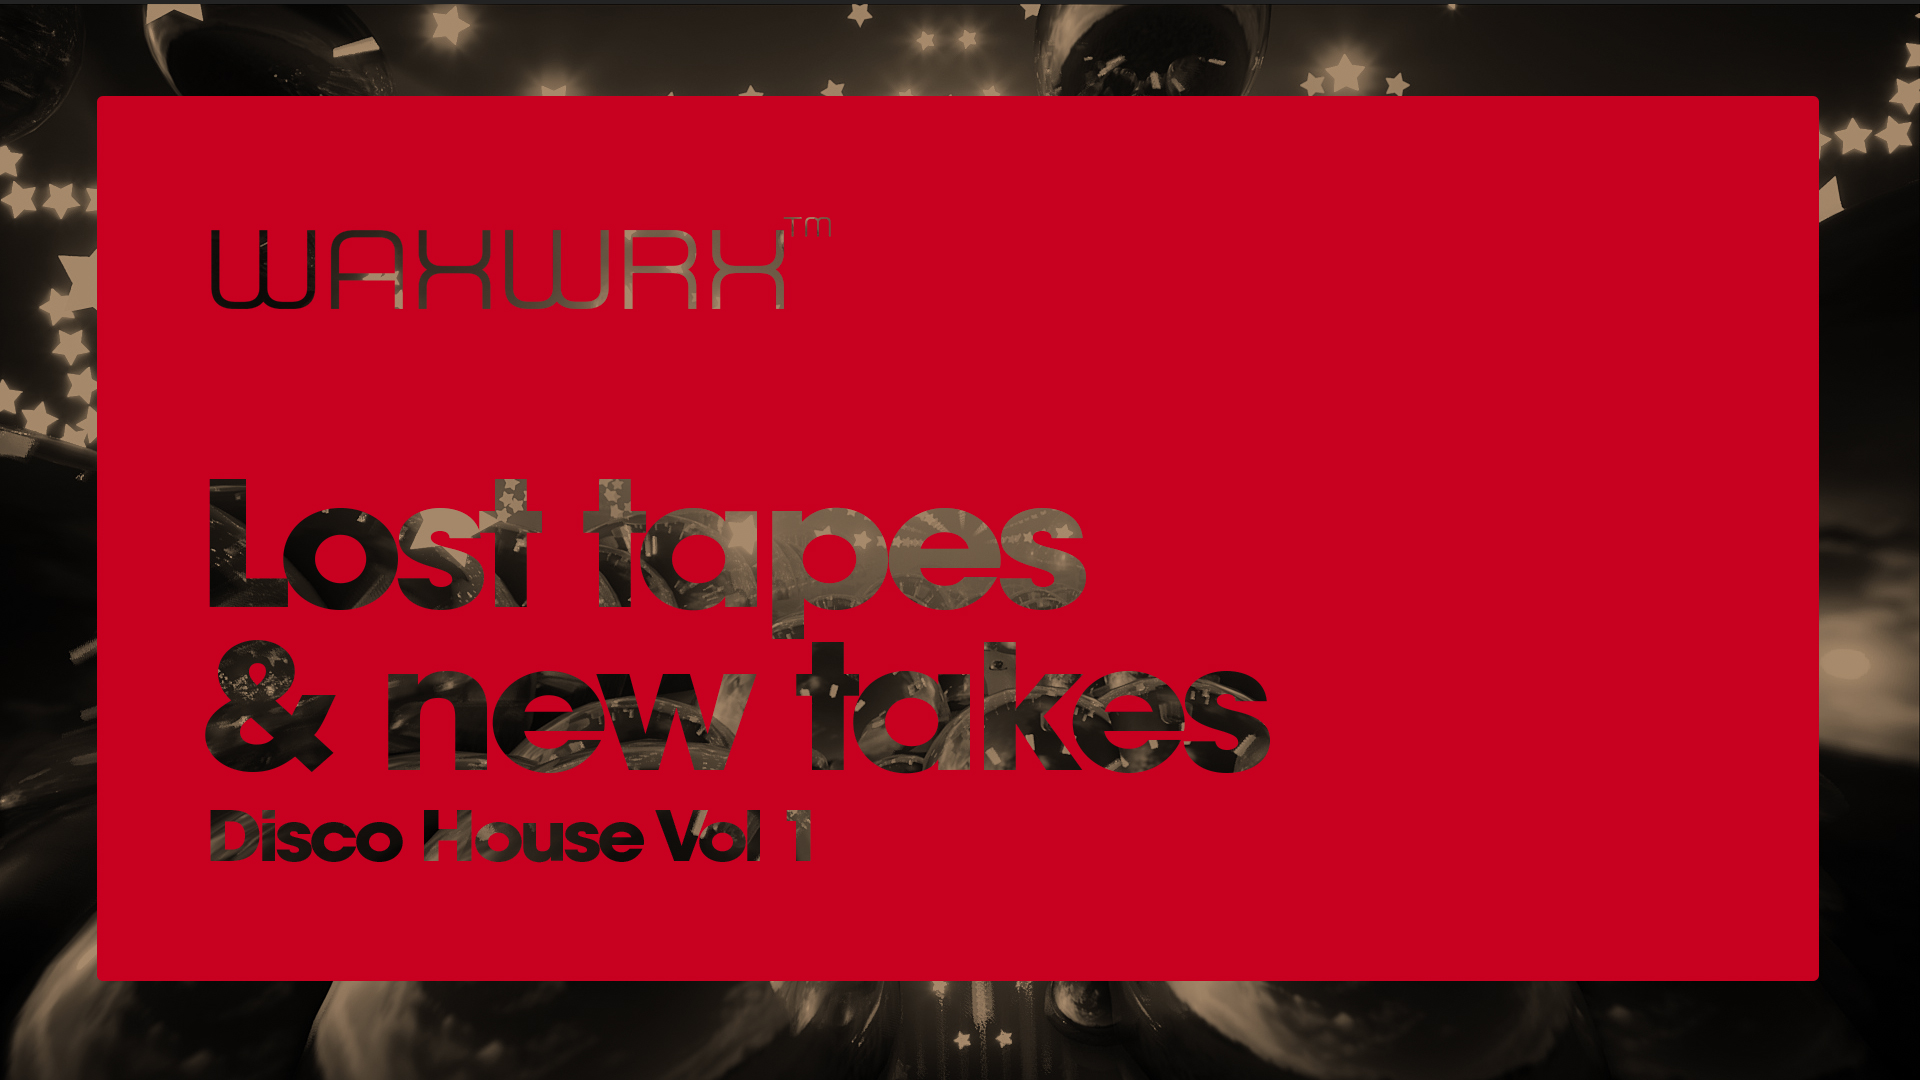 Lost tapes & new takes series – Disco House Vol1